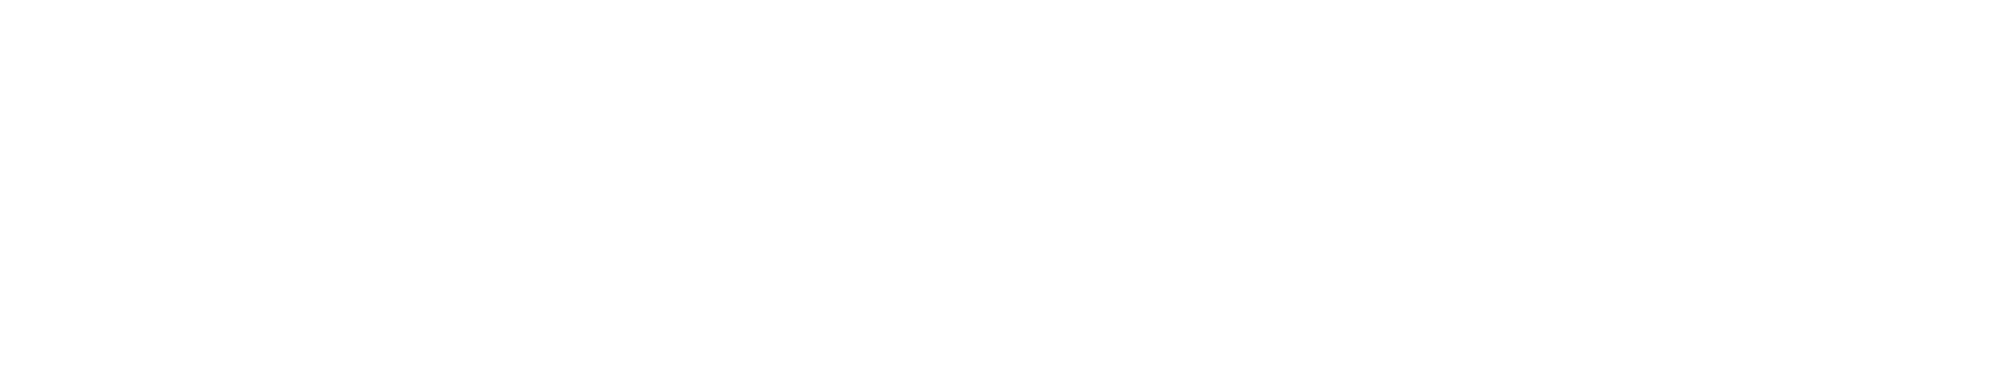 DE Partner - The Research Council of Norway